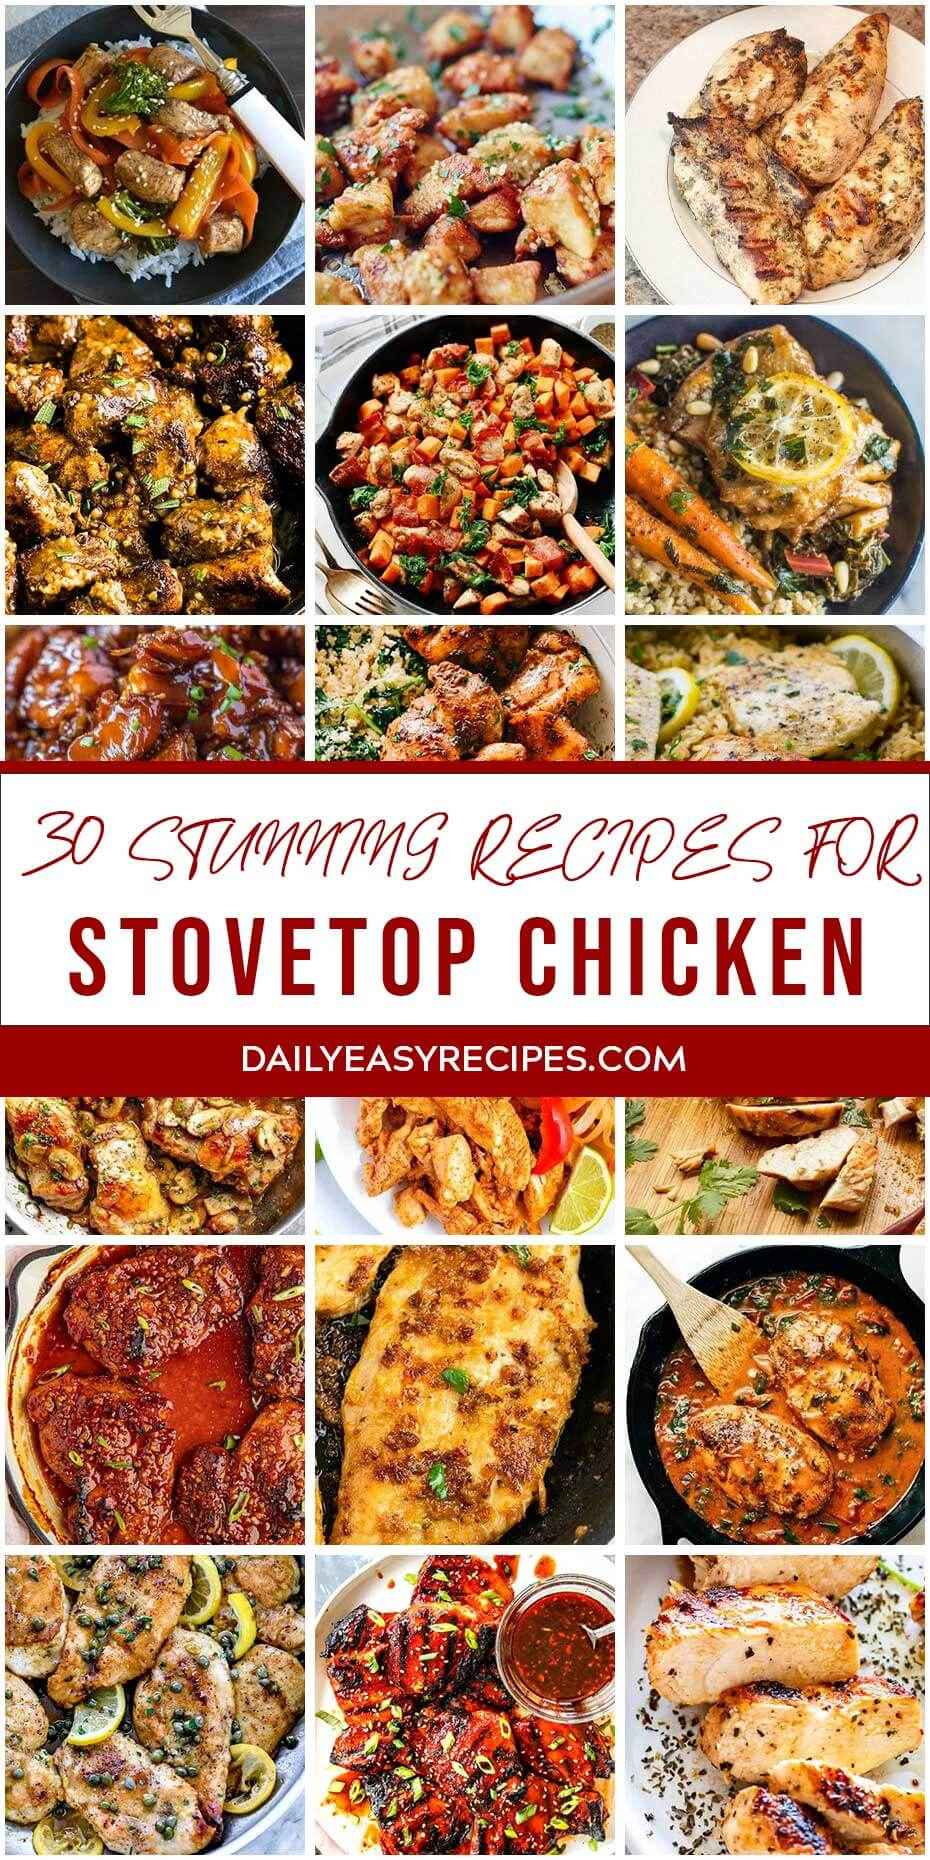 30 Stunning Recipes For Stovetop Chicken